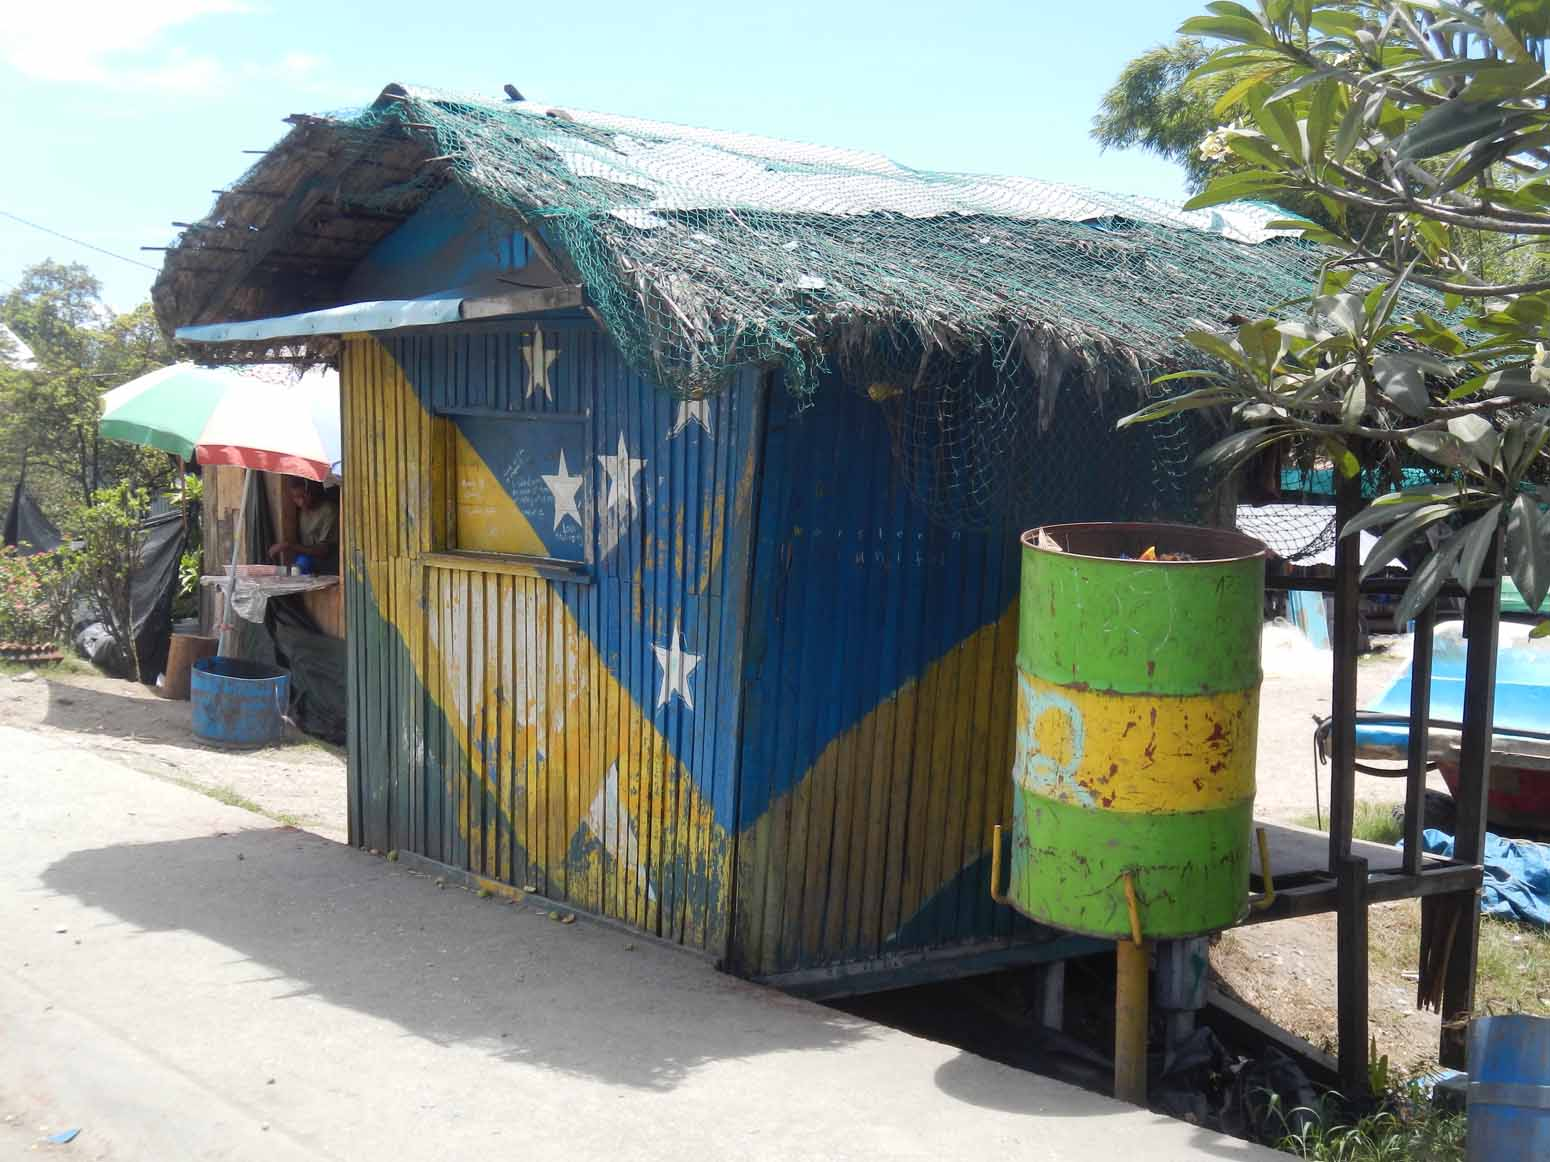 Shack painted with the Solomon Islands flag